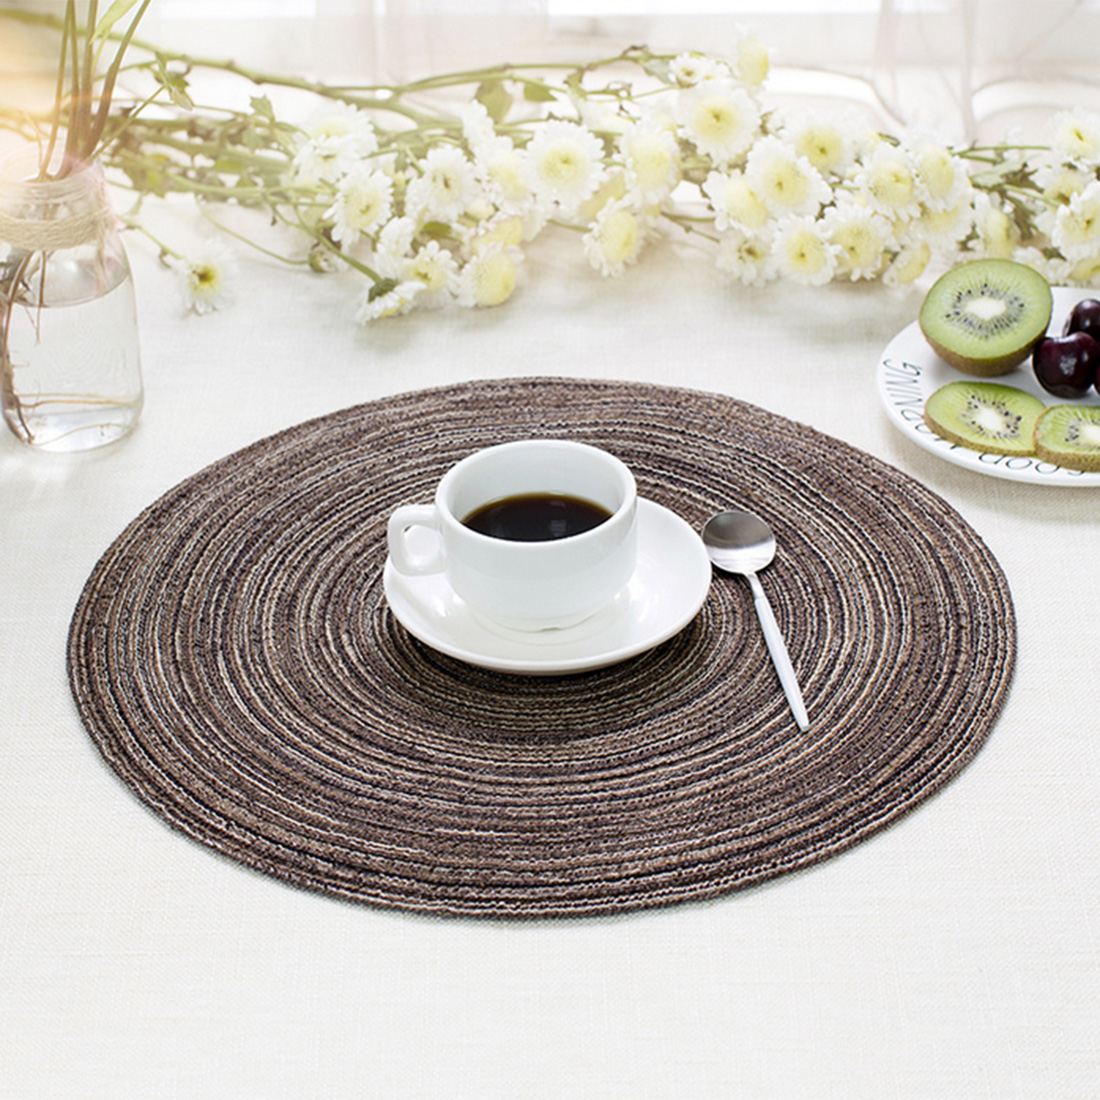 iTECHOR Placemat Creative Woven Western Table Mat Round Placemats for Table Heat Resistant Coffee Placemat